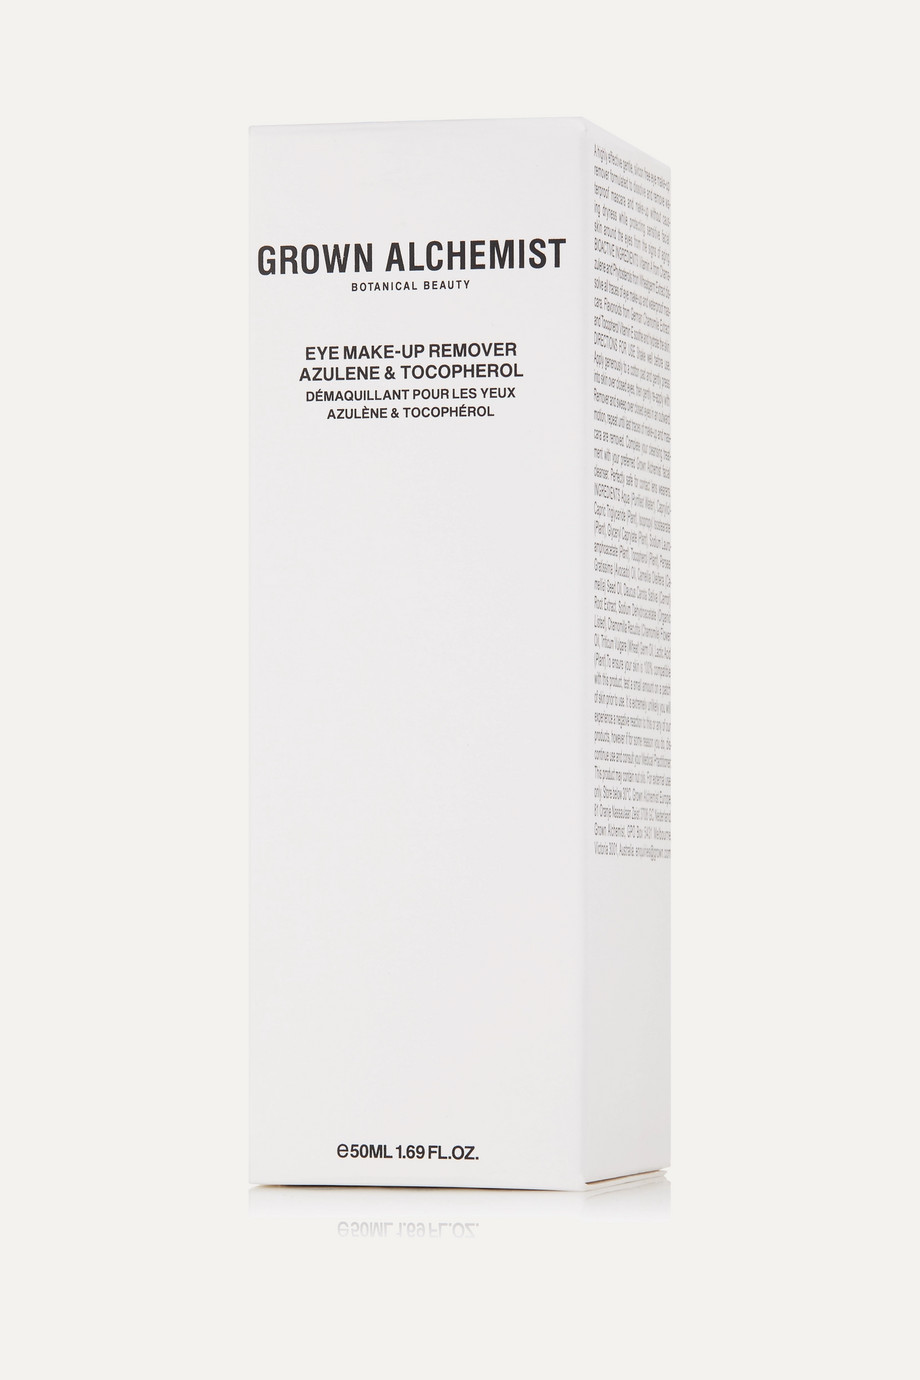 GROWN ALCHEMIST Eye Make-Up Remover, 50ml